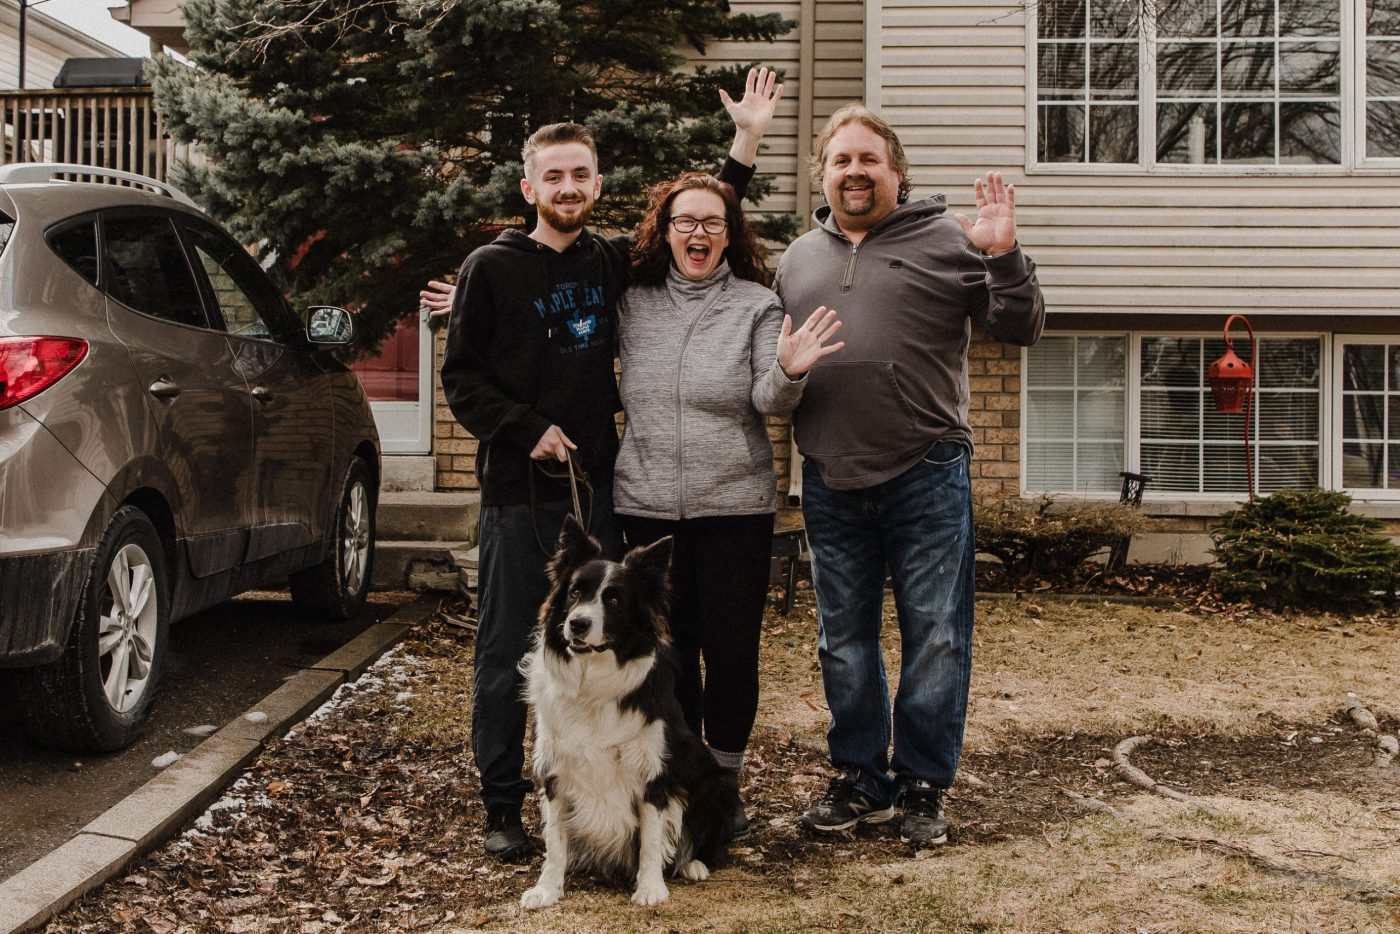 mother, father, son and border collie on front lawn of a house in the surburbs of peterborough, ontario waving for a family photography session by heather doughty photography